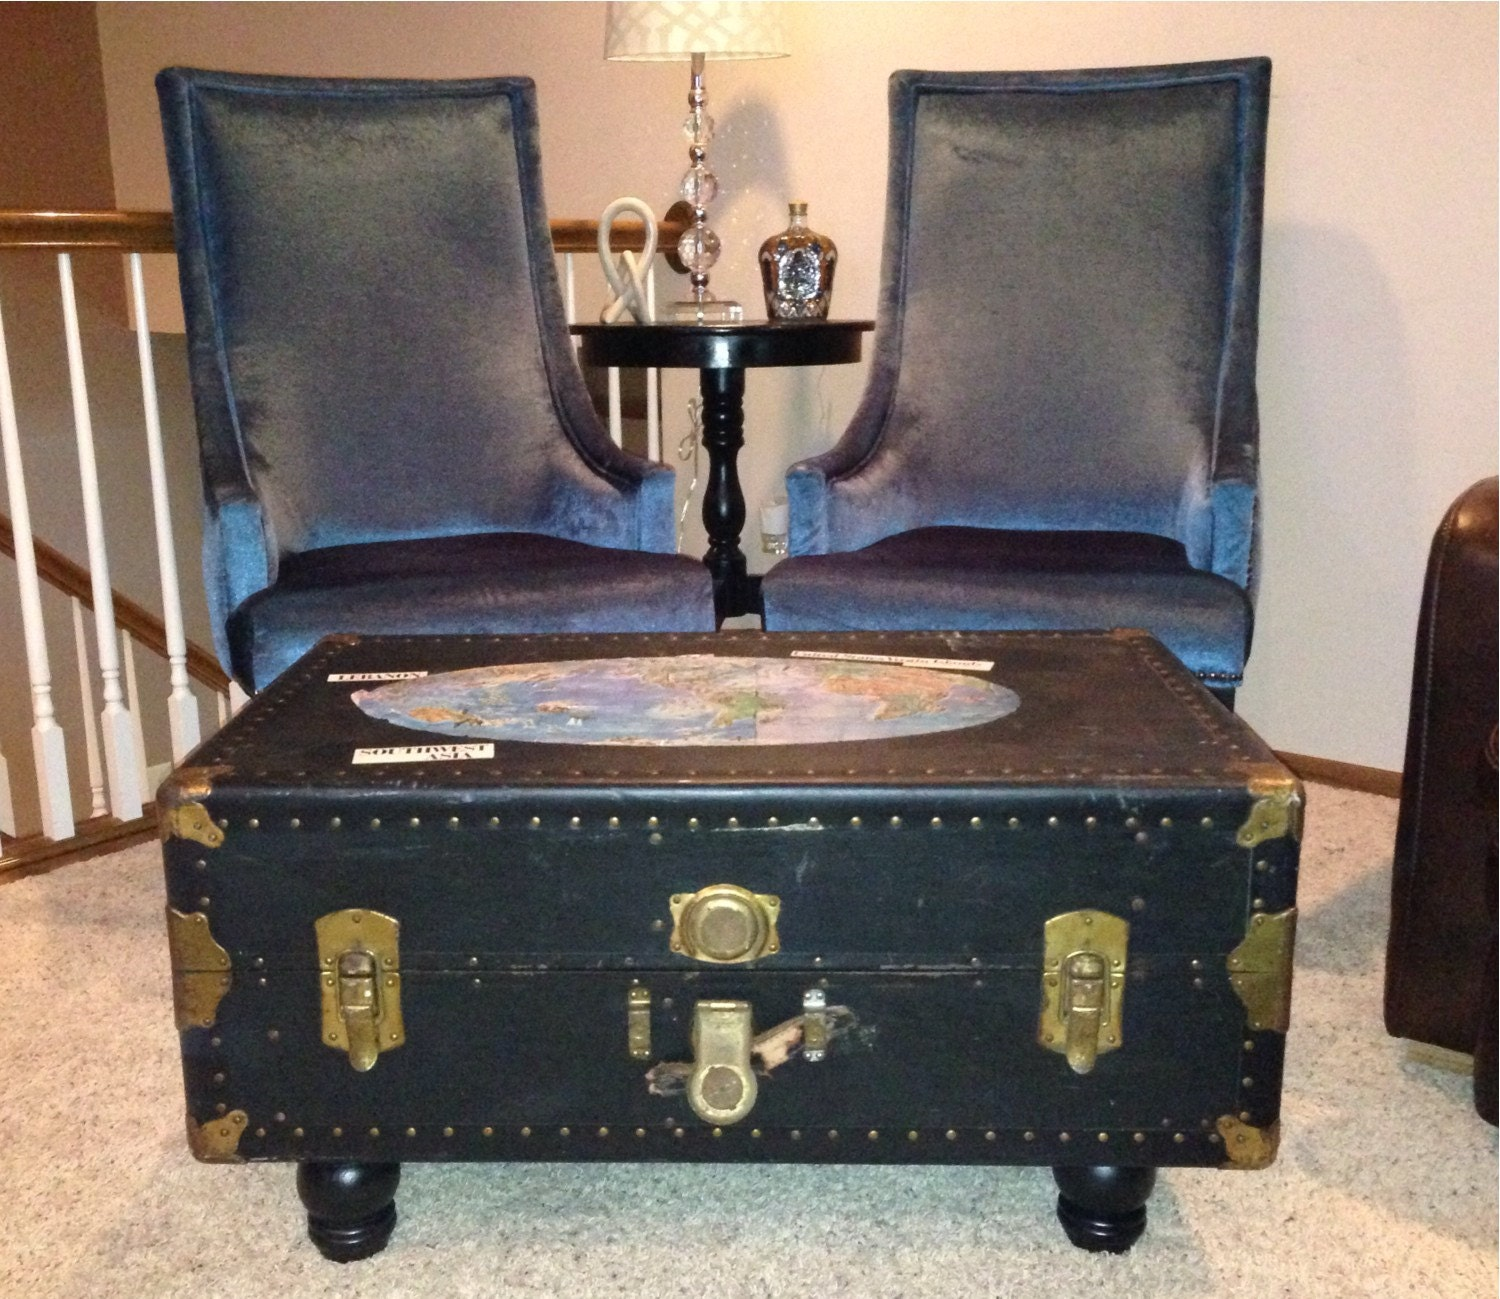 Antique Trunks As Coffee Tables: Upcycled Vintage Trunk Coffee Table By ChaseArnettDesign